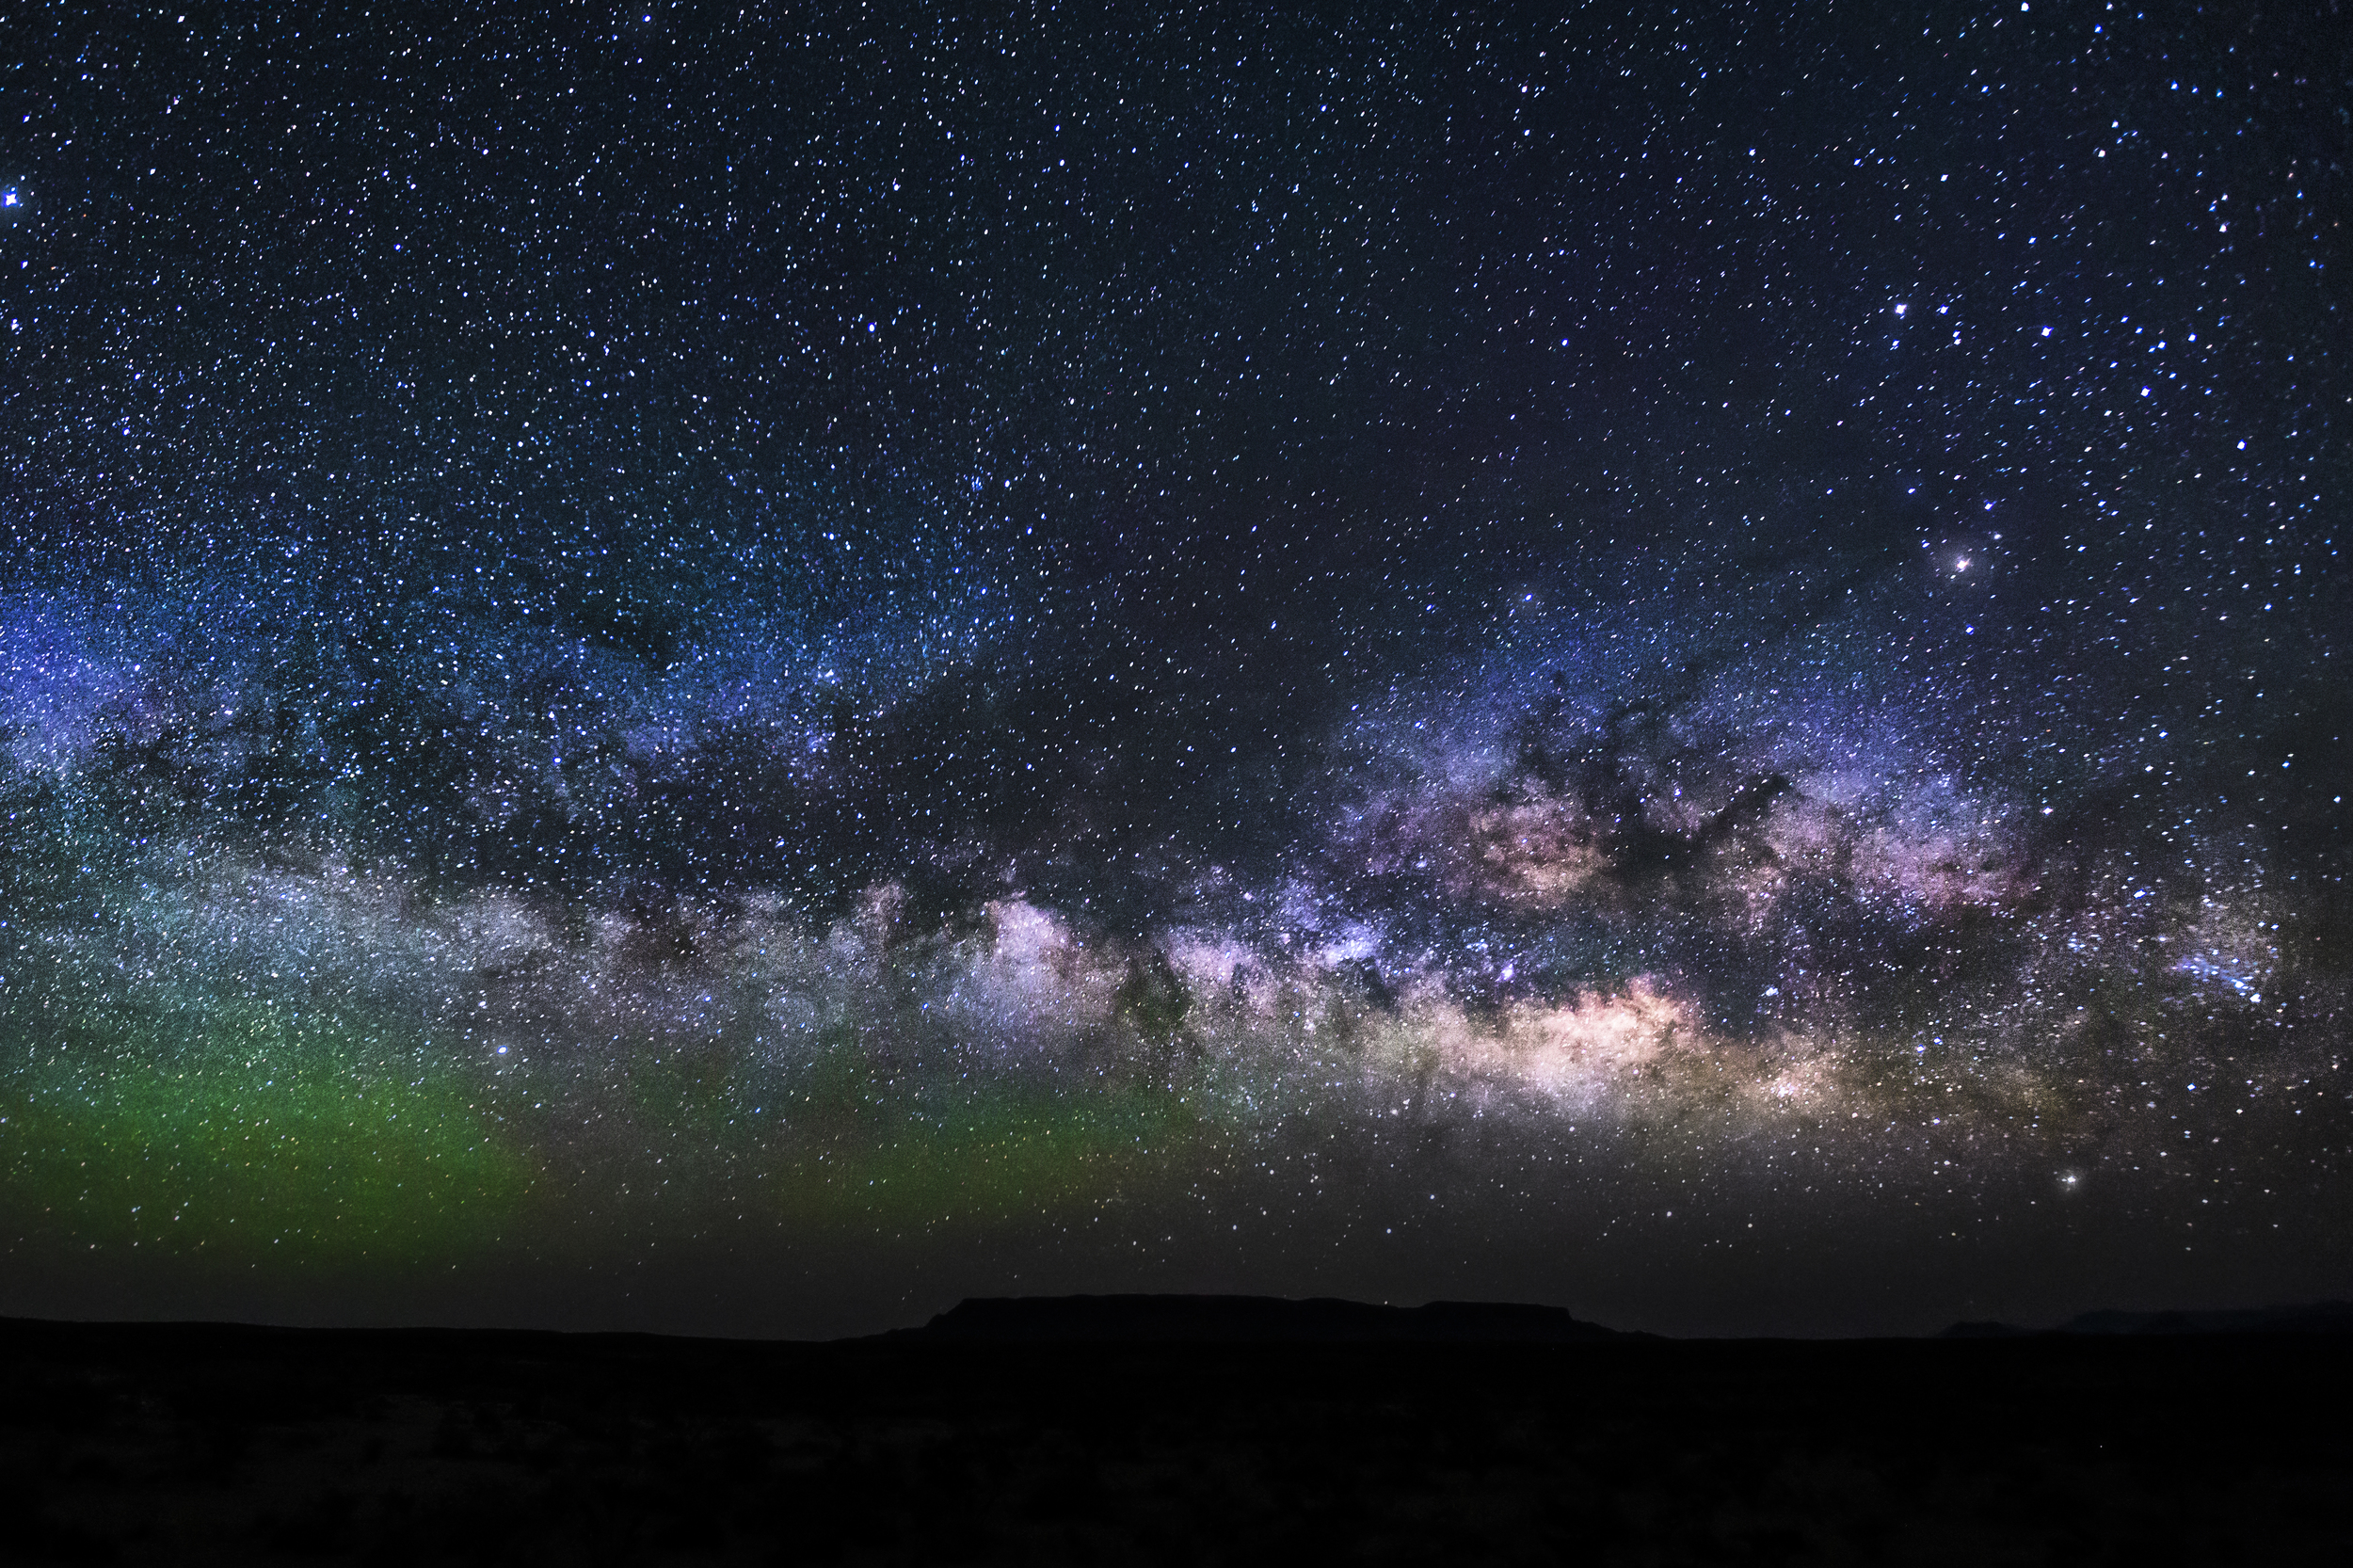 The Milky Way on the horizon as seen from Big Bend National Park.